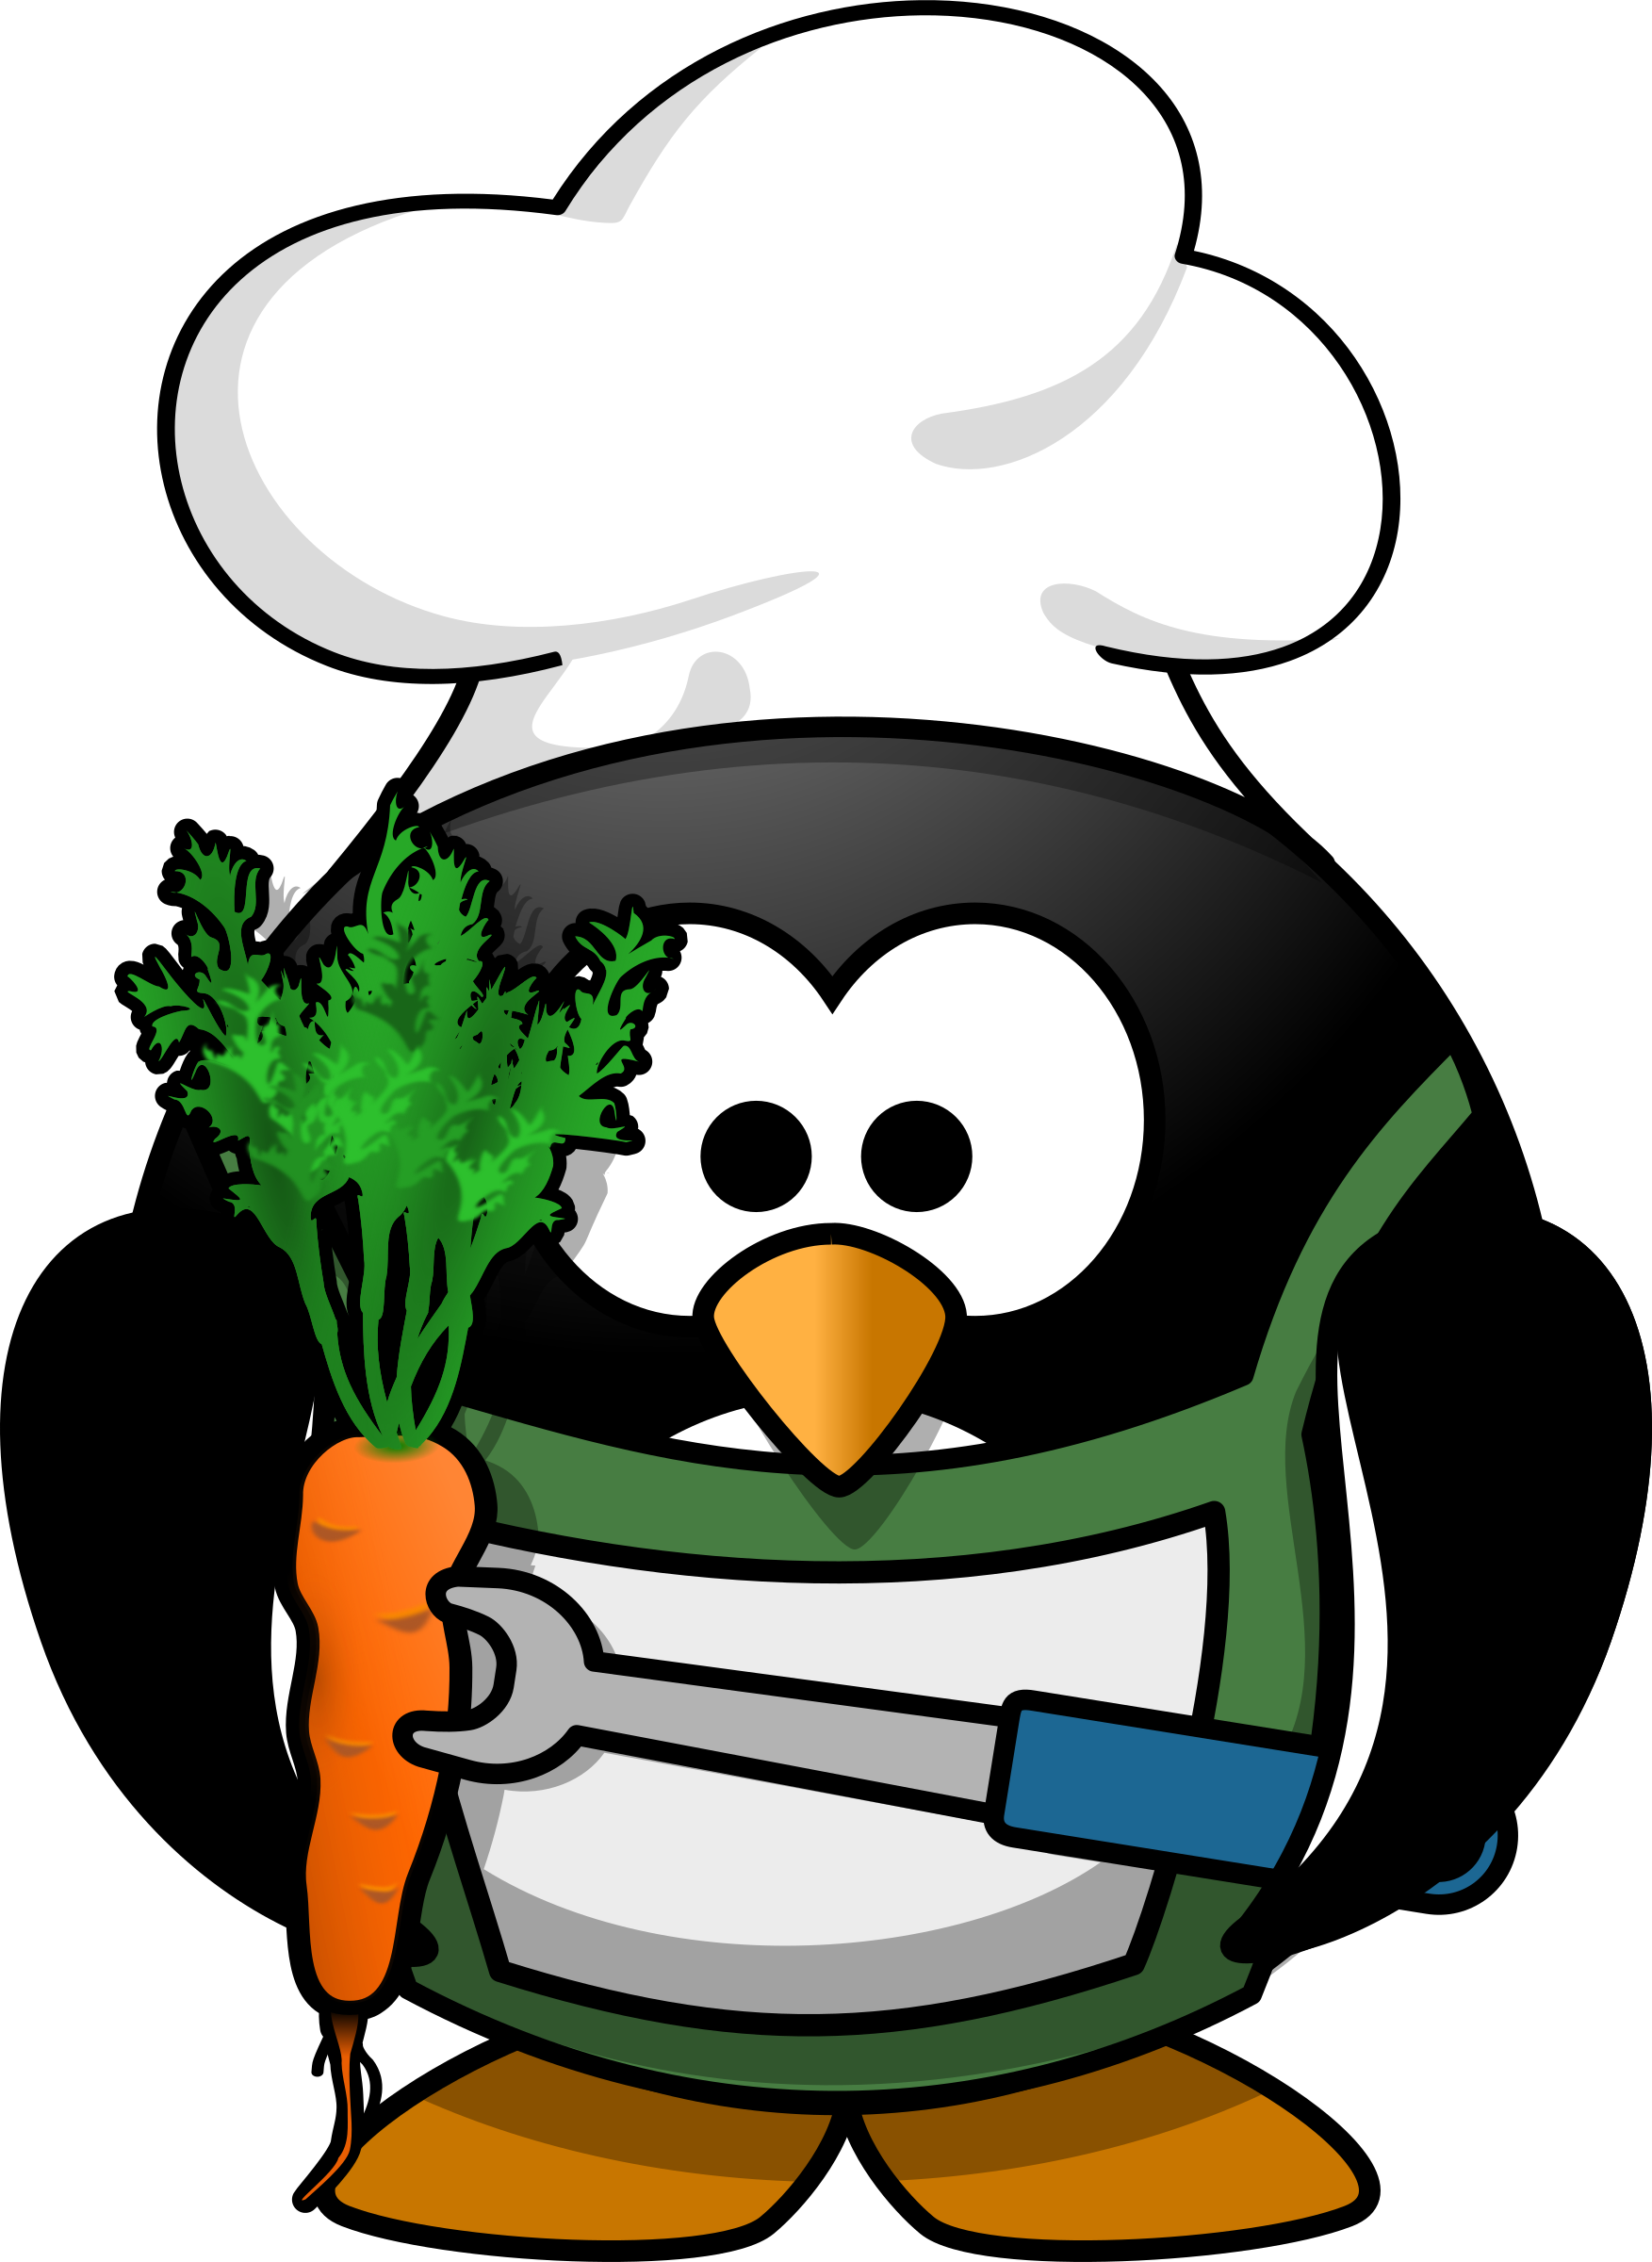 Veggie-Penguin by Moini